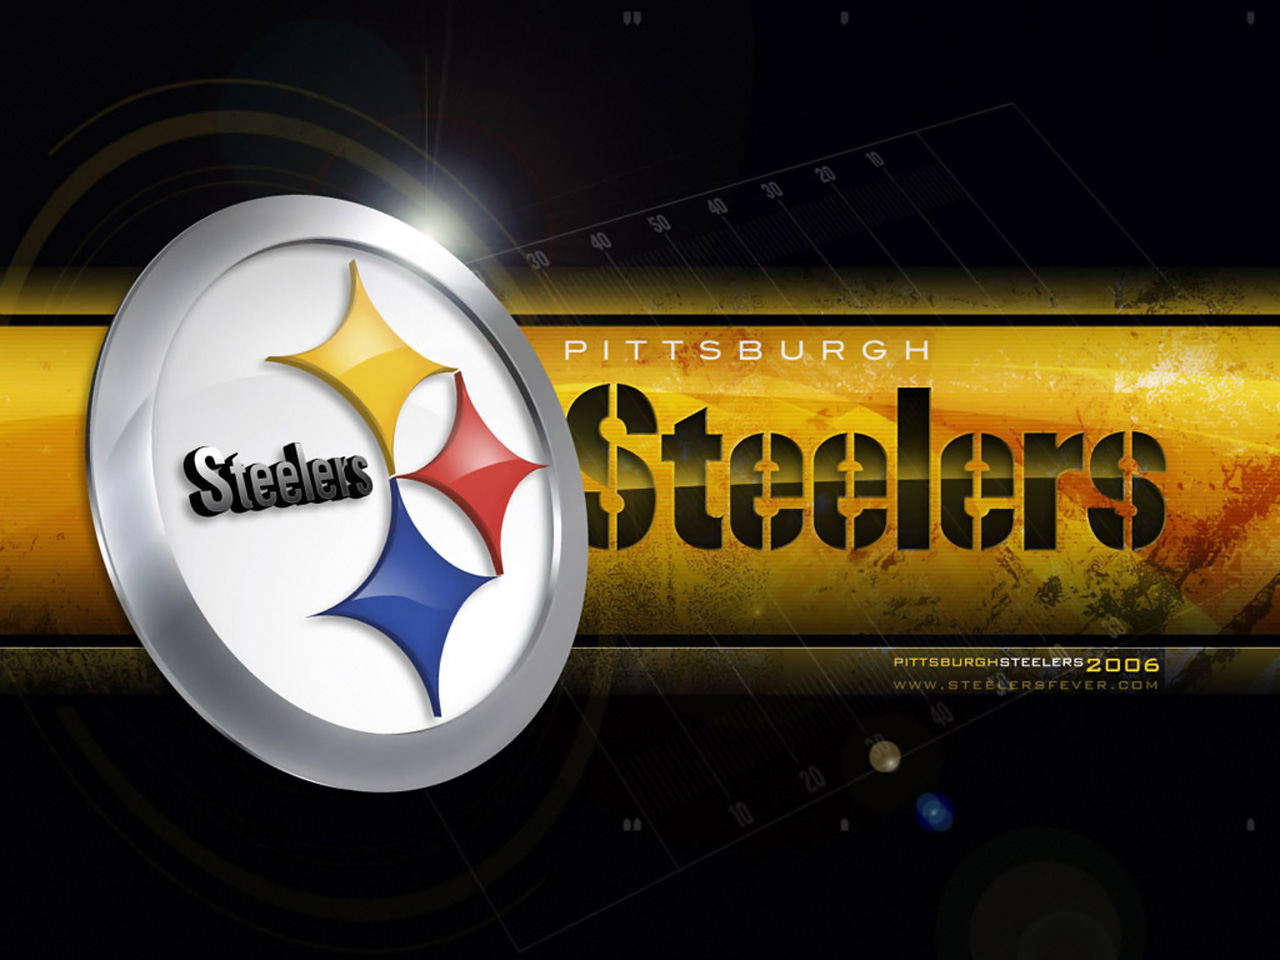 Steelers wallpaper wallpaper Pittsburgh Steelers wallpapers 1280x960